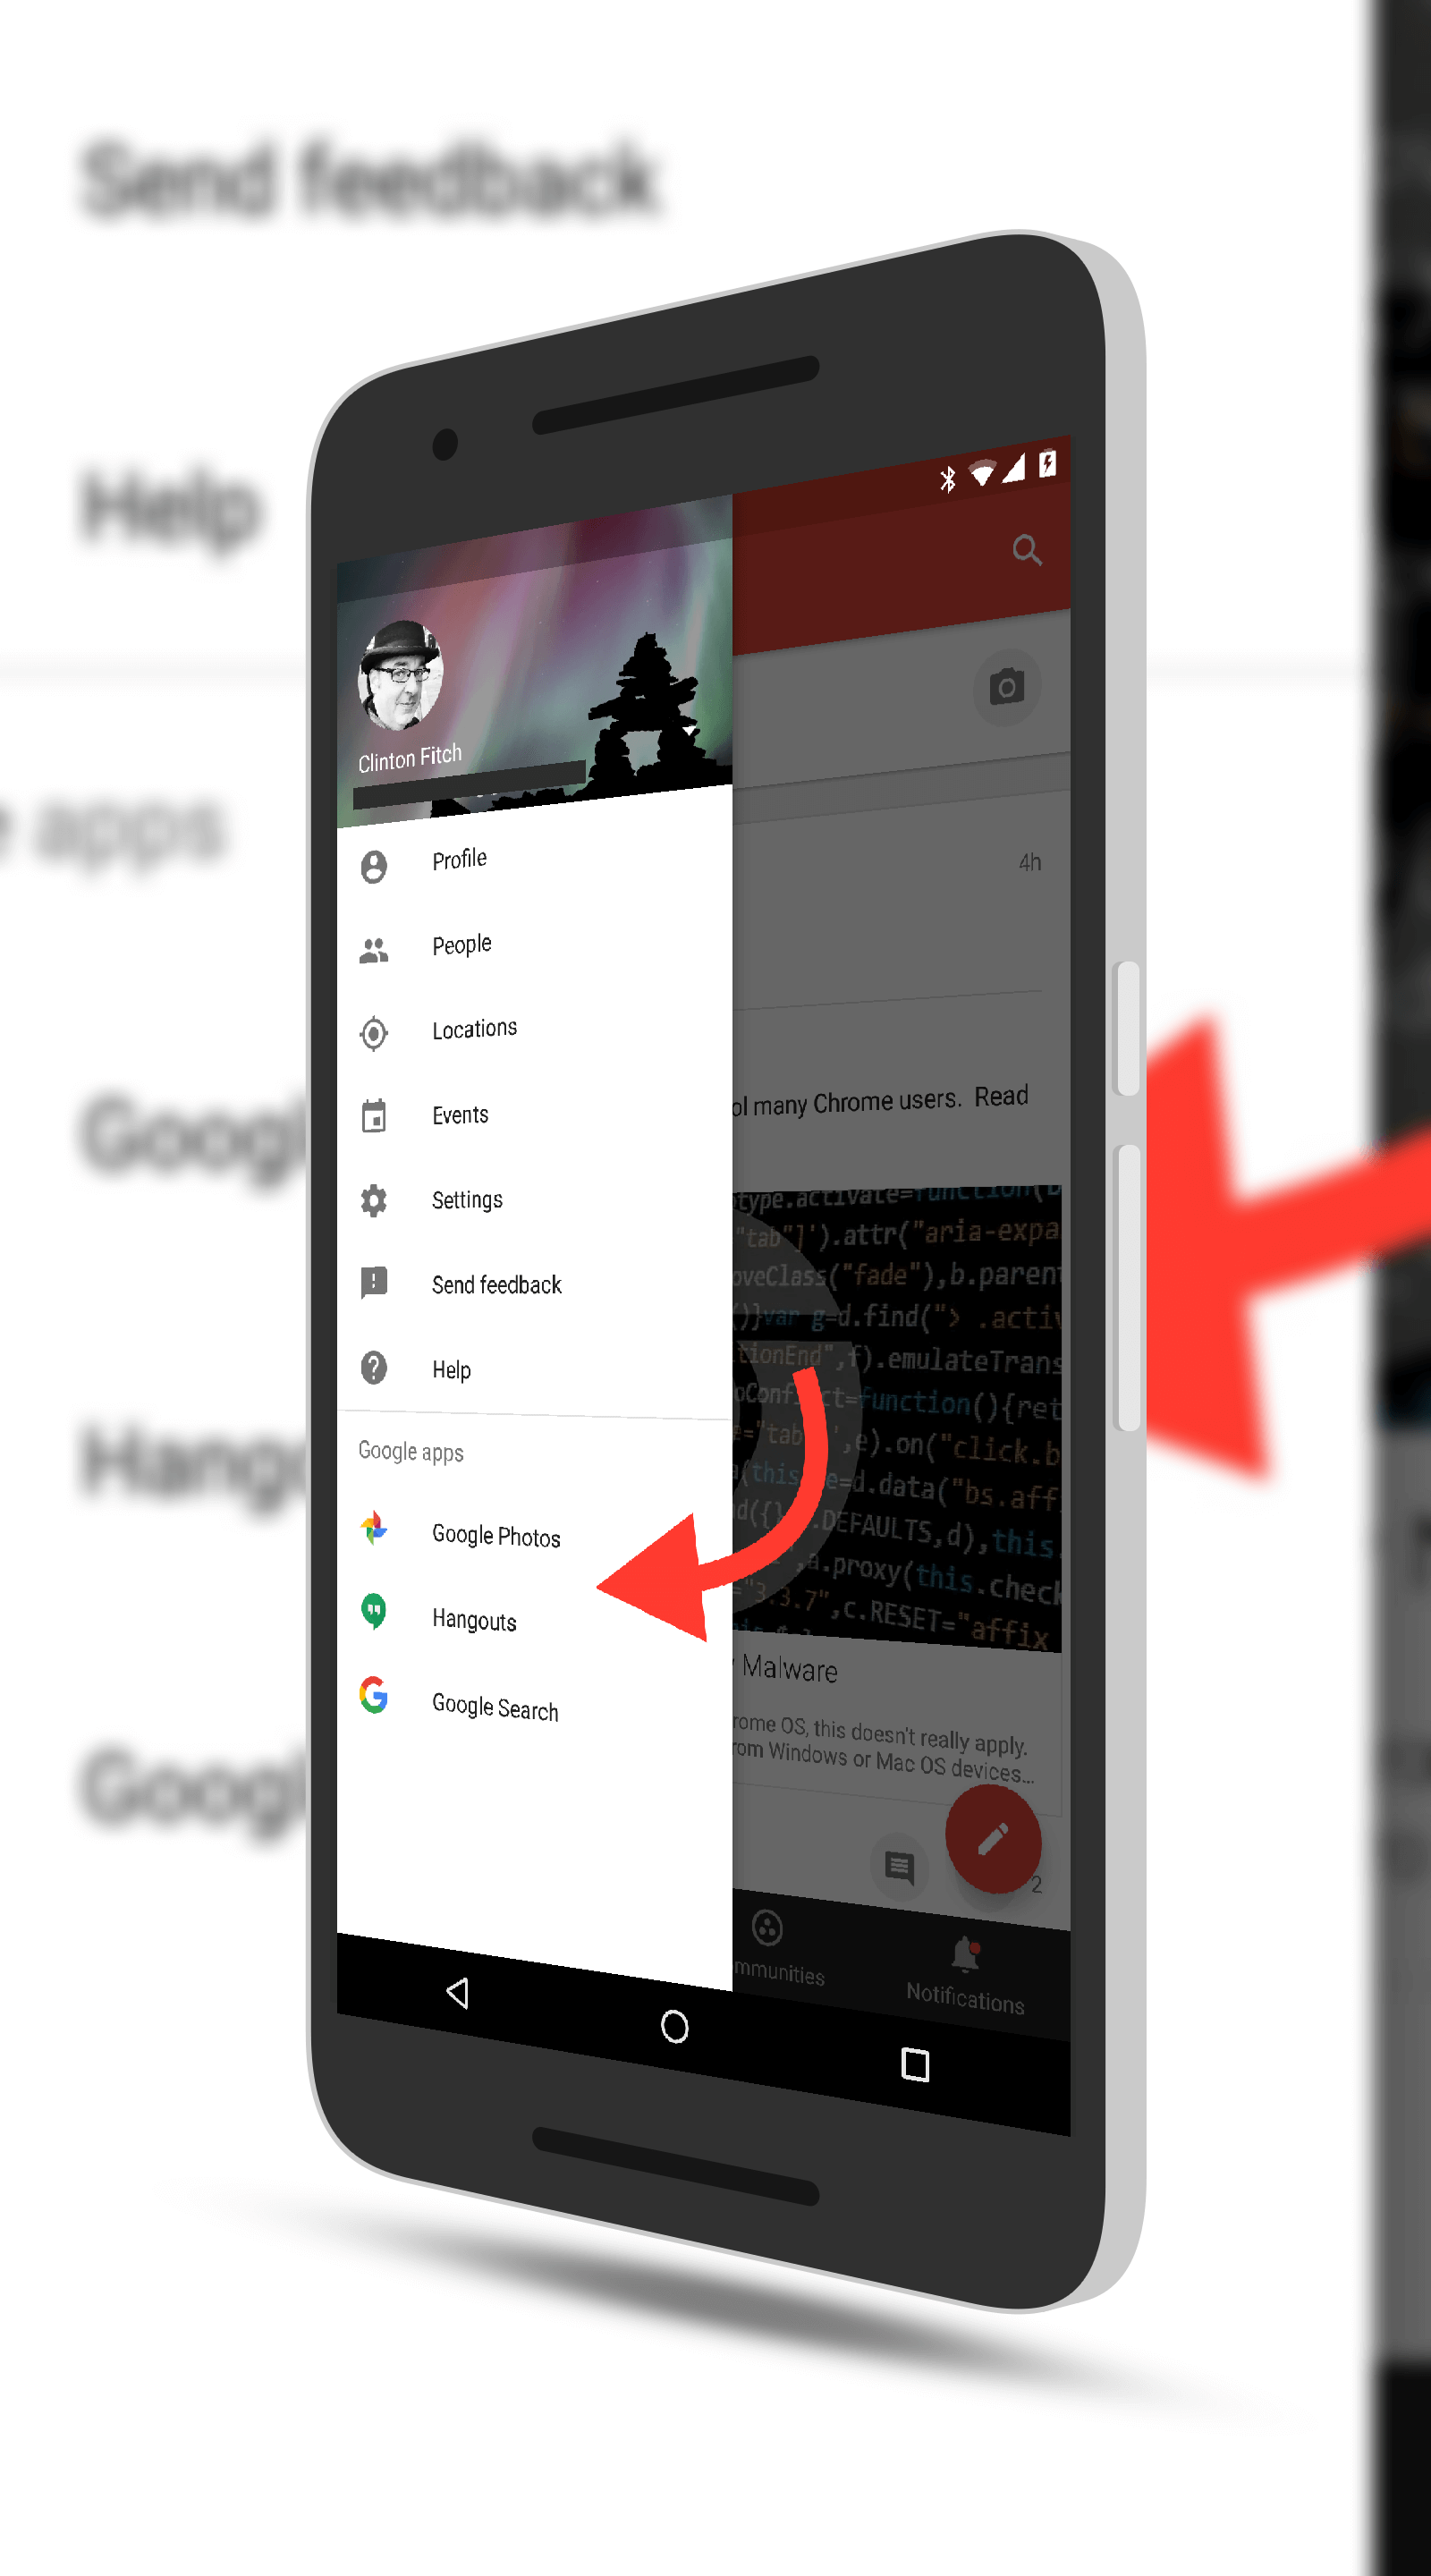 Google+ With Link to Spaces Removed